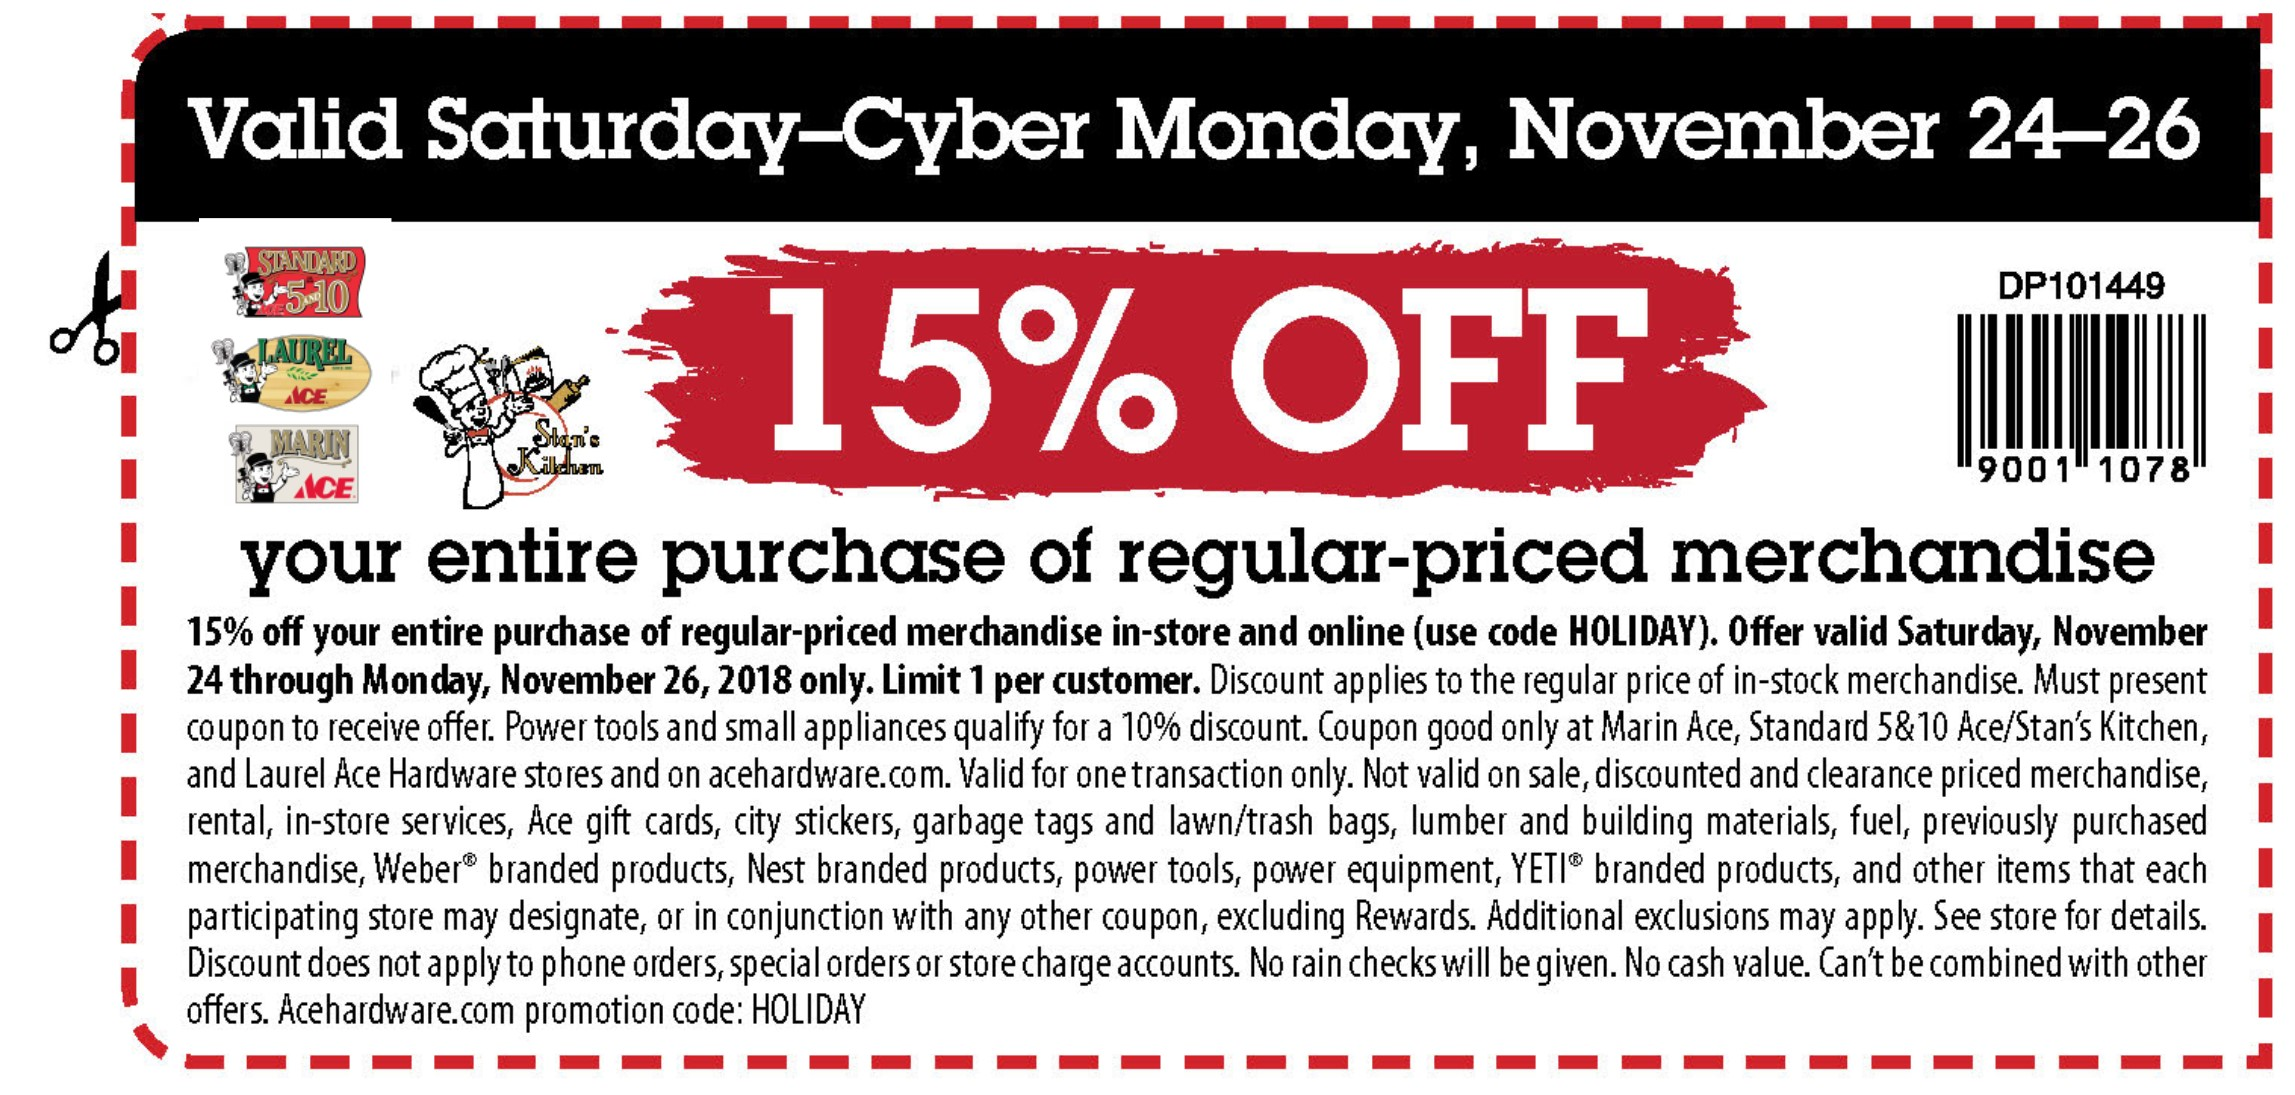 Sat-Mon all stores Coupon